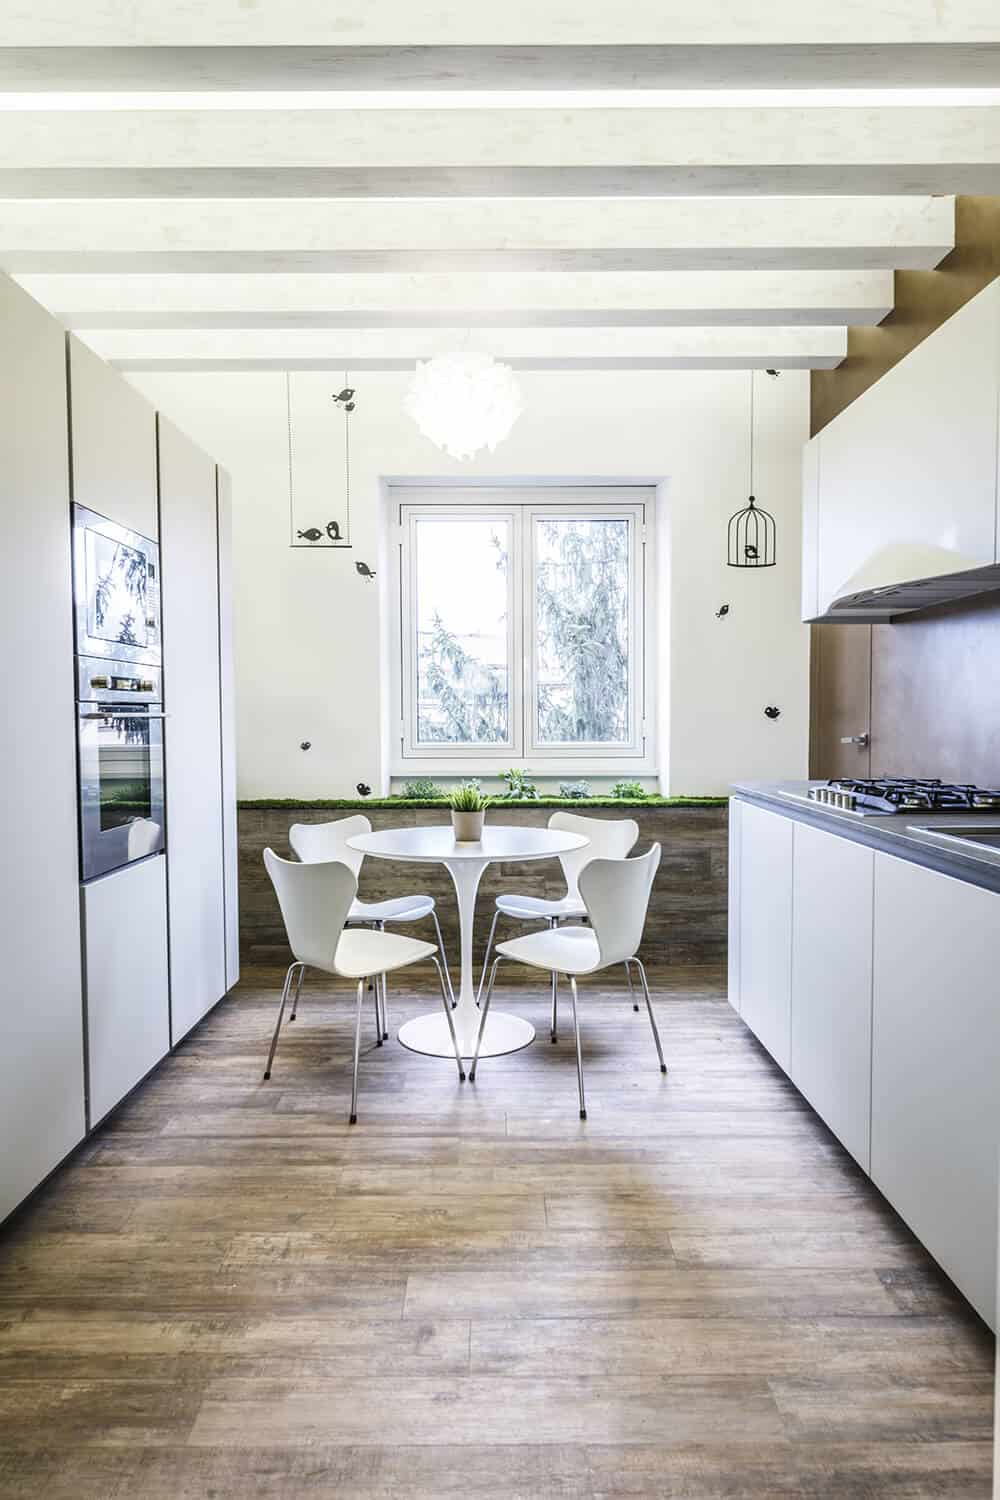 Sleek exposed beams along the ceiling add a nice textural contrast to the sleek surfaces of the cabinetry and countertops. White wingback chairs paired with a round dining table stand out against the wide plank flooring and lower wooden wall.